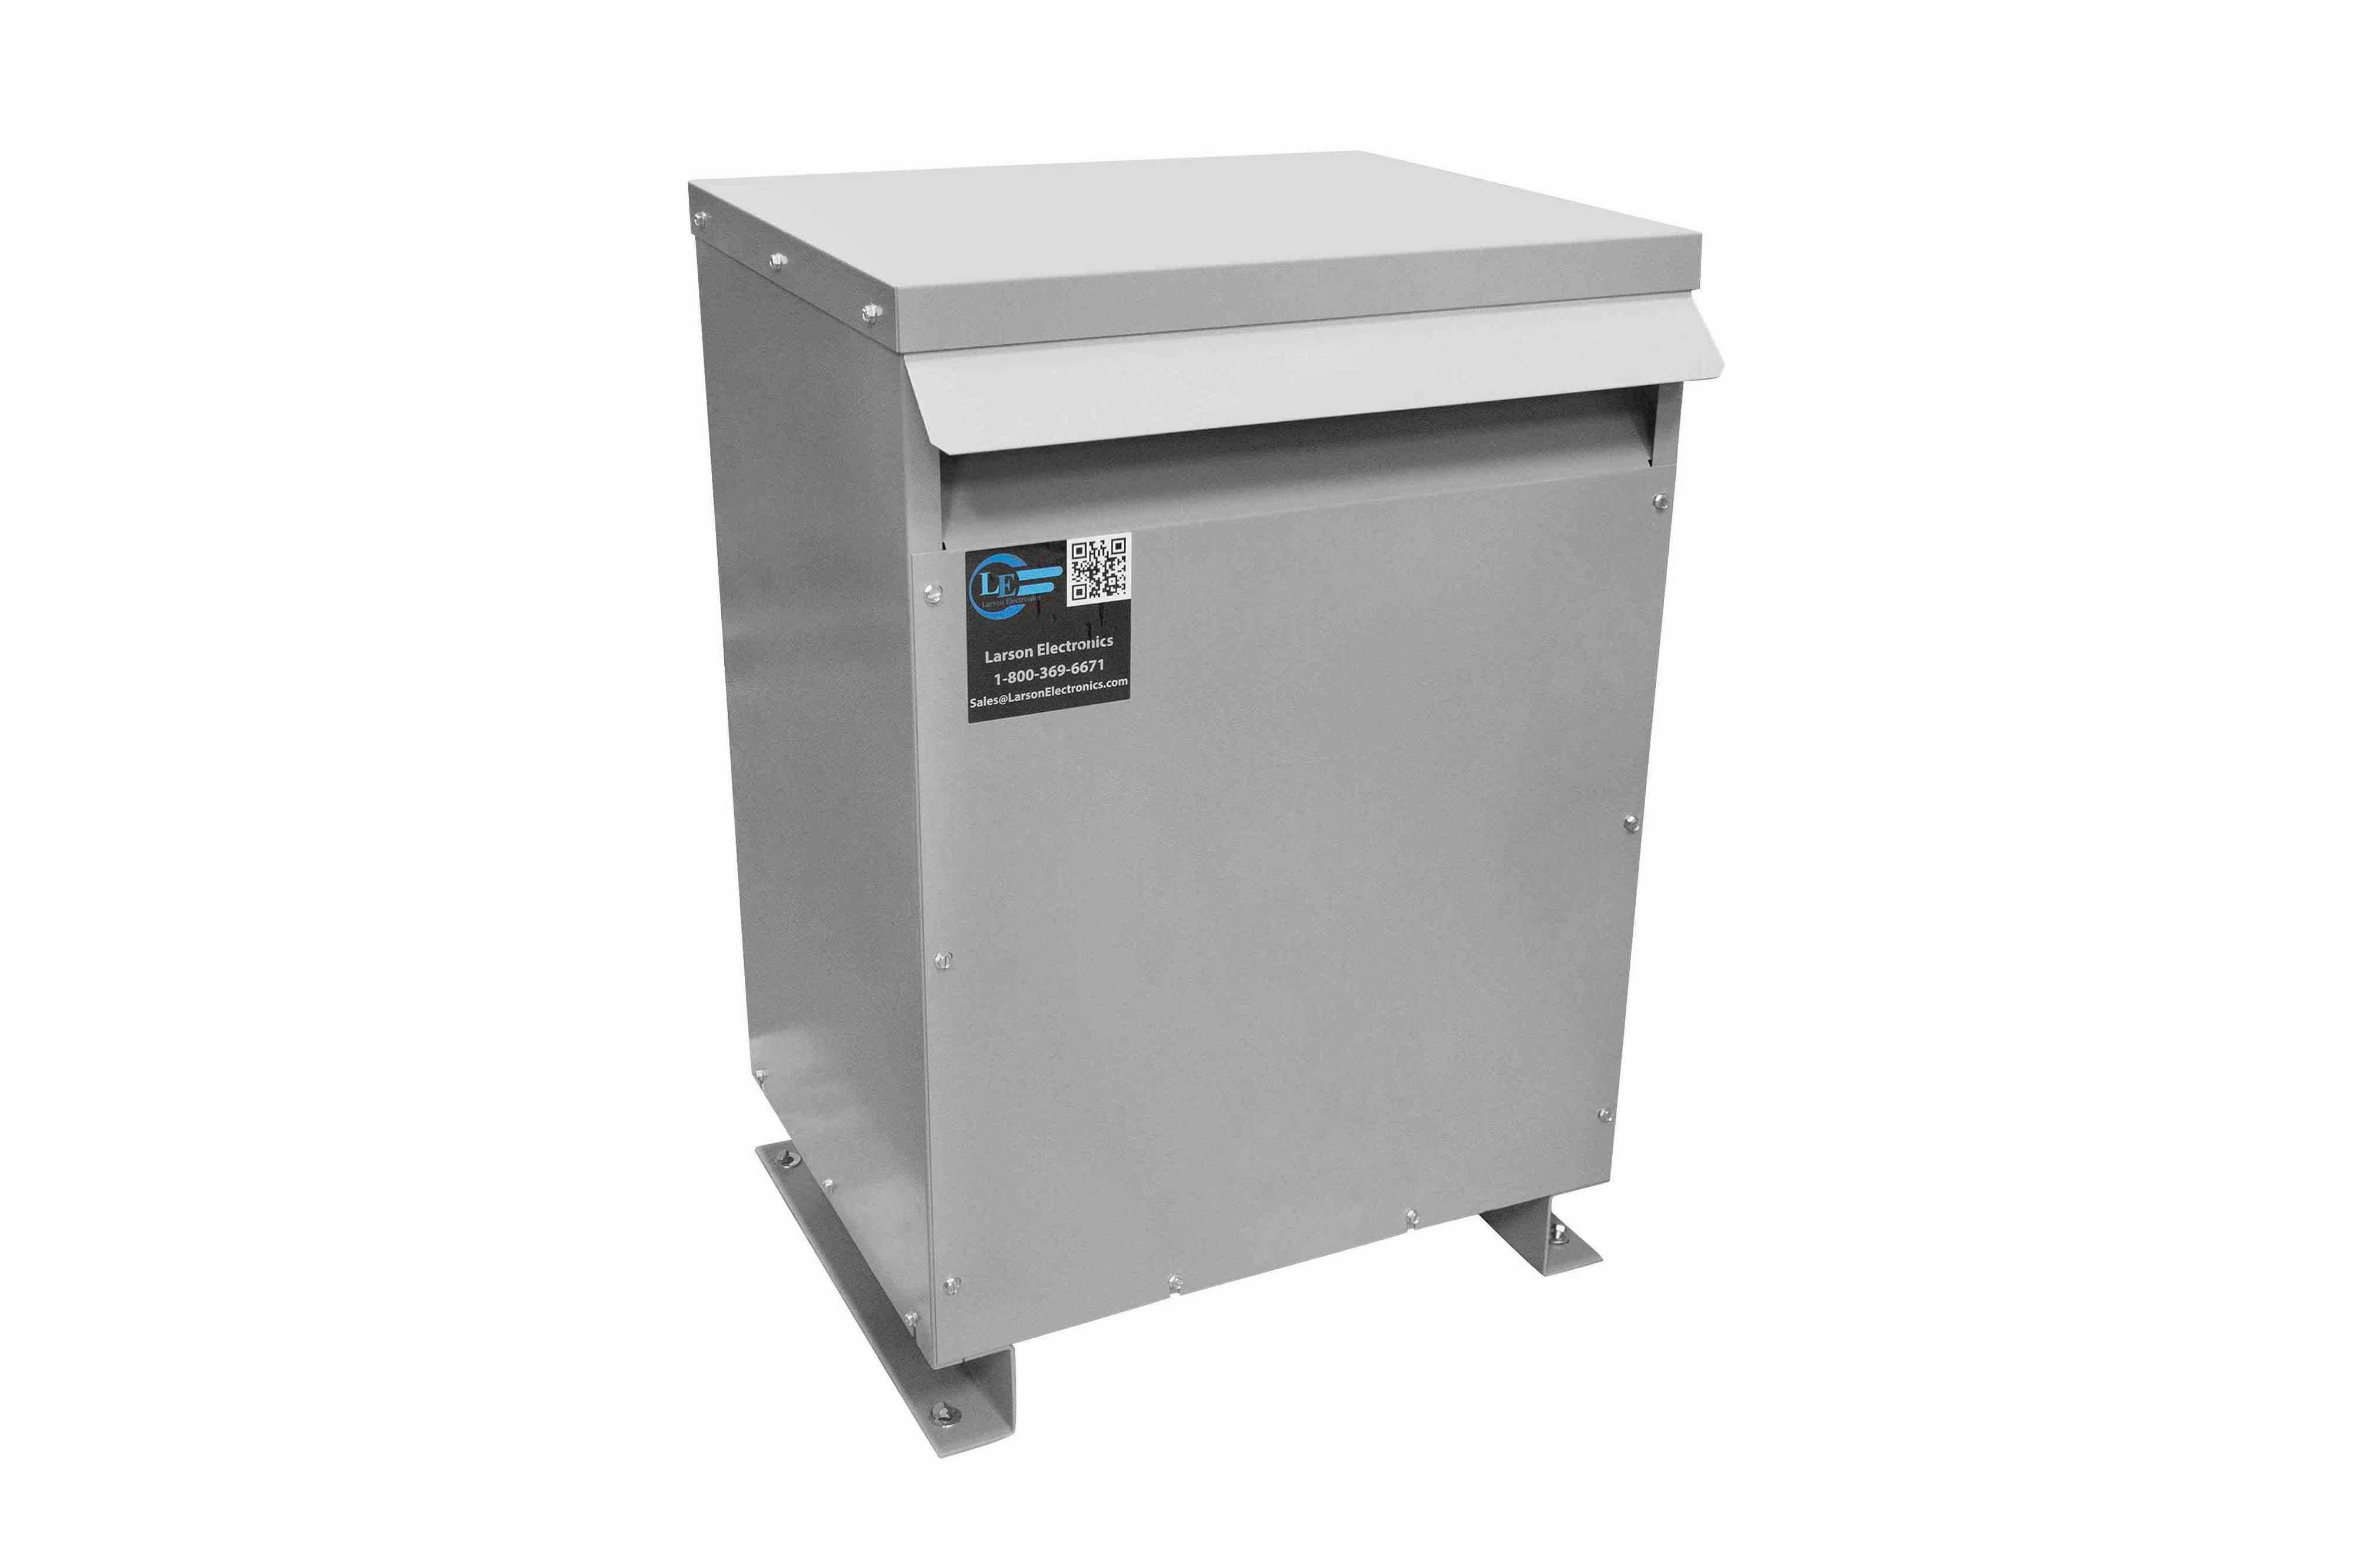 9 kVA 3PH Isolation Transformer, 415V Wye Primary, 208Y/120 Wye-N Secondary, N3R, Ventilated, 60 Hz